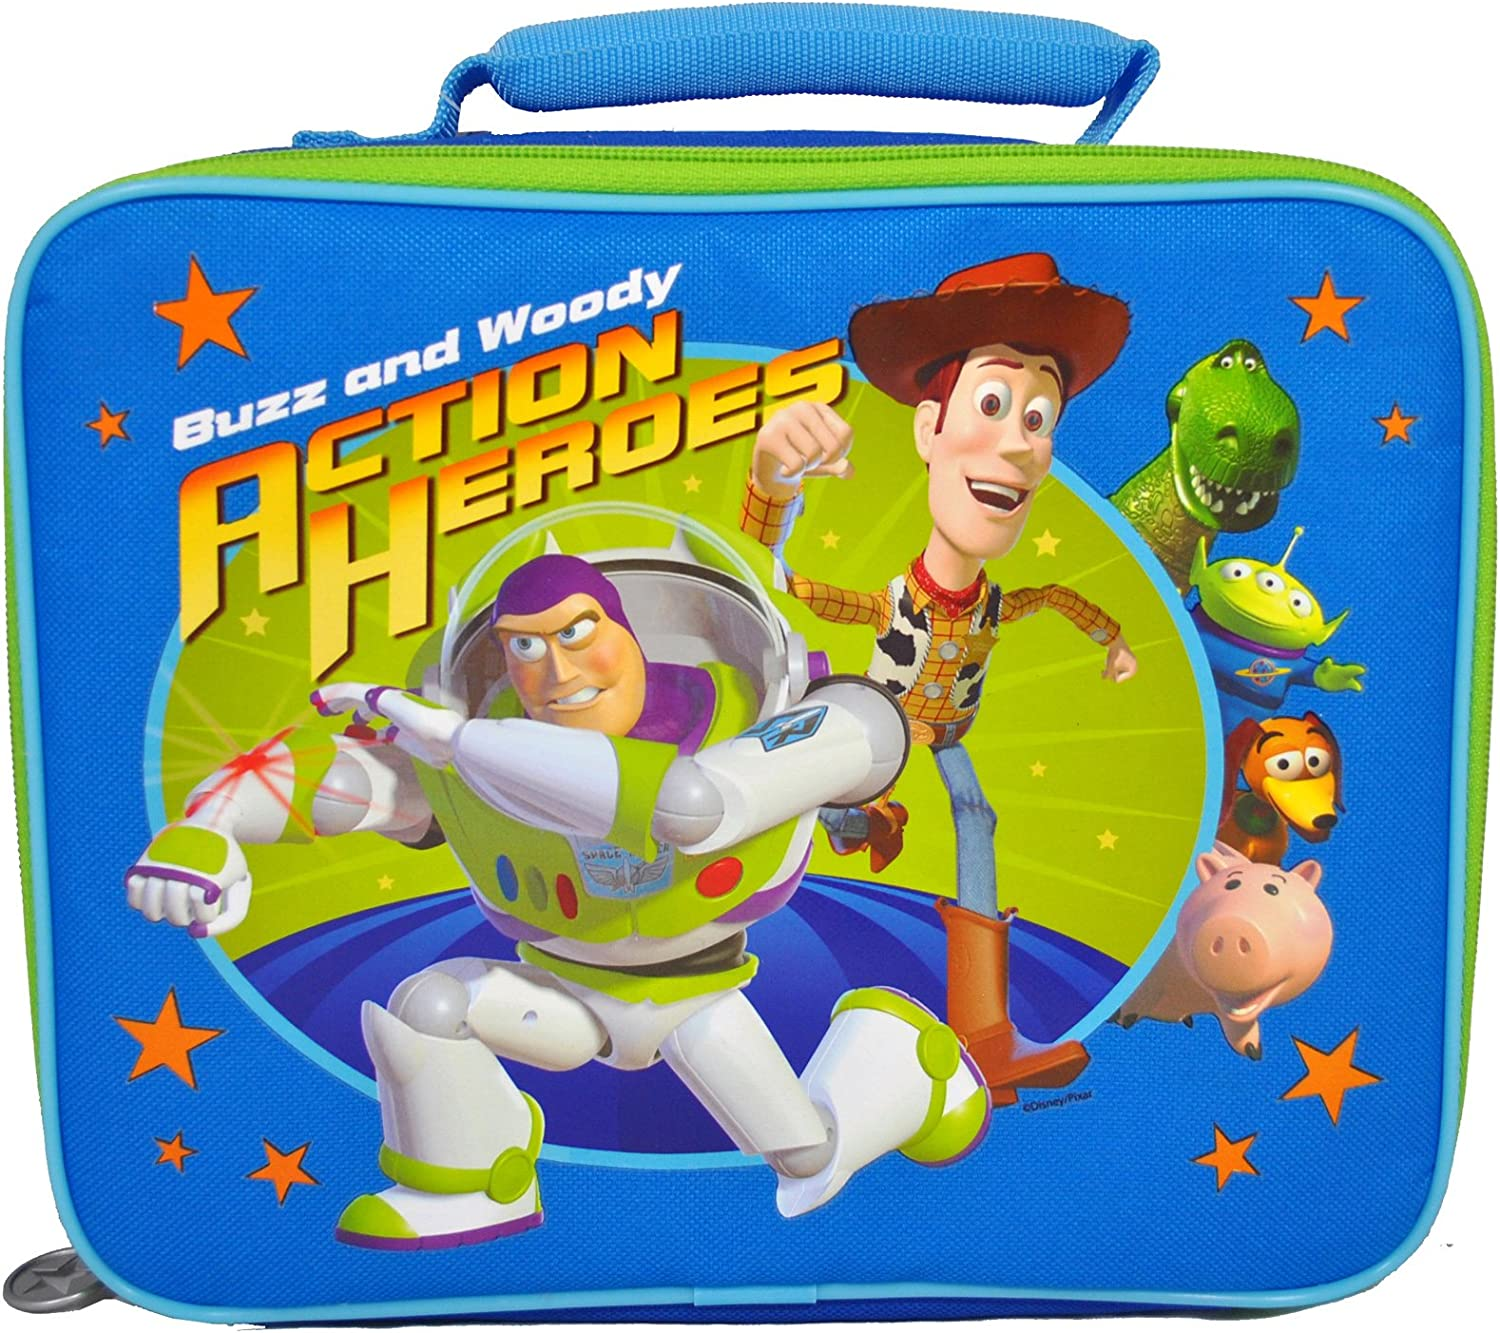 salida Zak  Disney Pixar Movie Series Juguete Story Buzz Buzz Buzz and Woody Acción Heroes Single Compartment Soft Insulated Lunch Bag (Bag Dimension  10 x 8-1 2 x 3-1 2) by Juguete Story  100% garantía genuina de contador